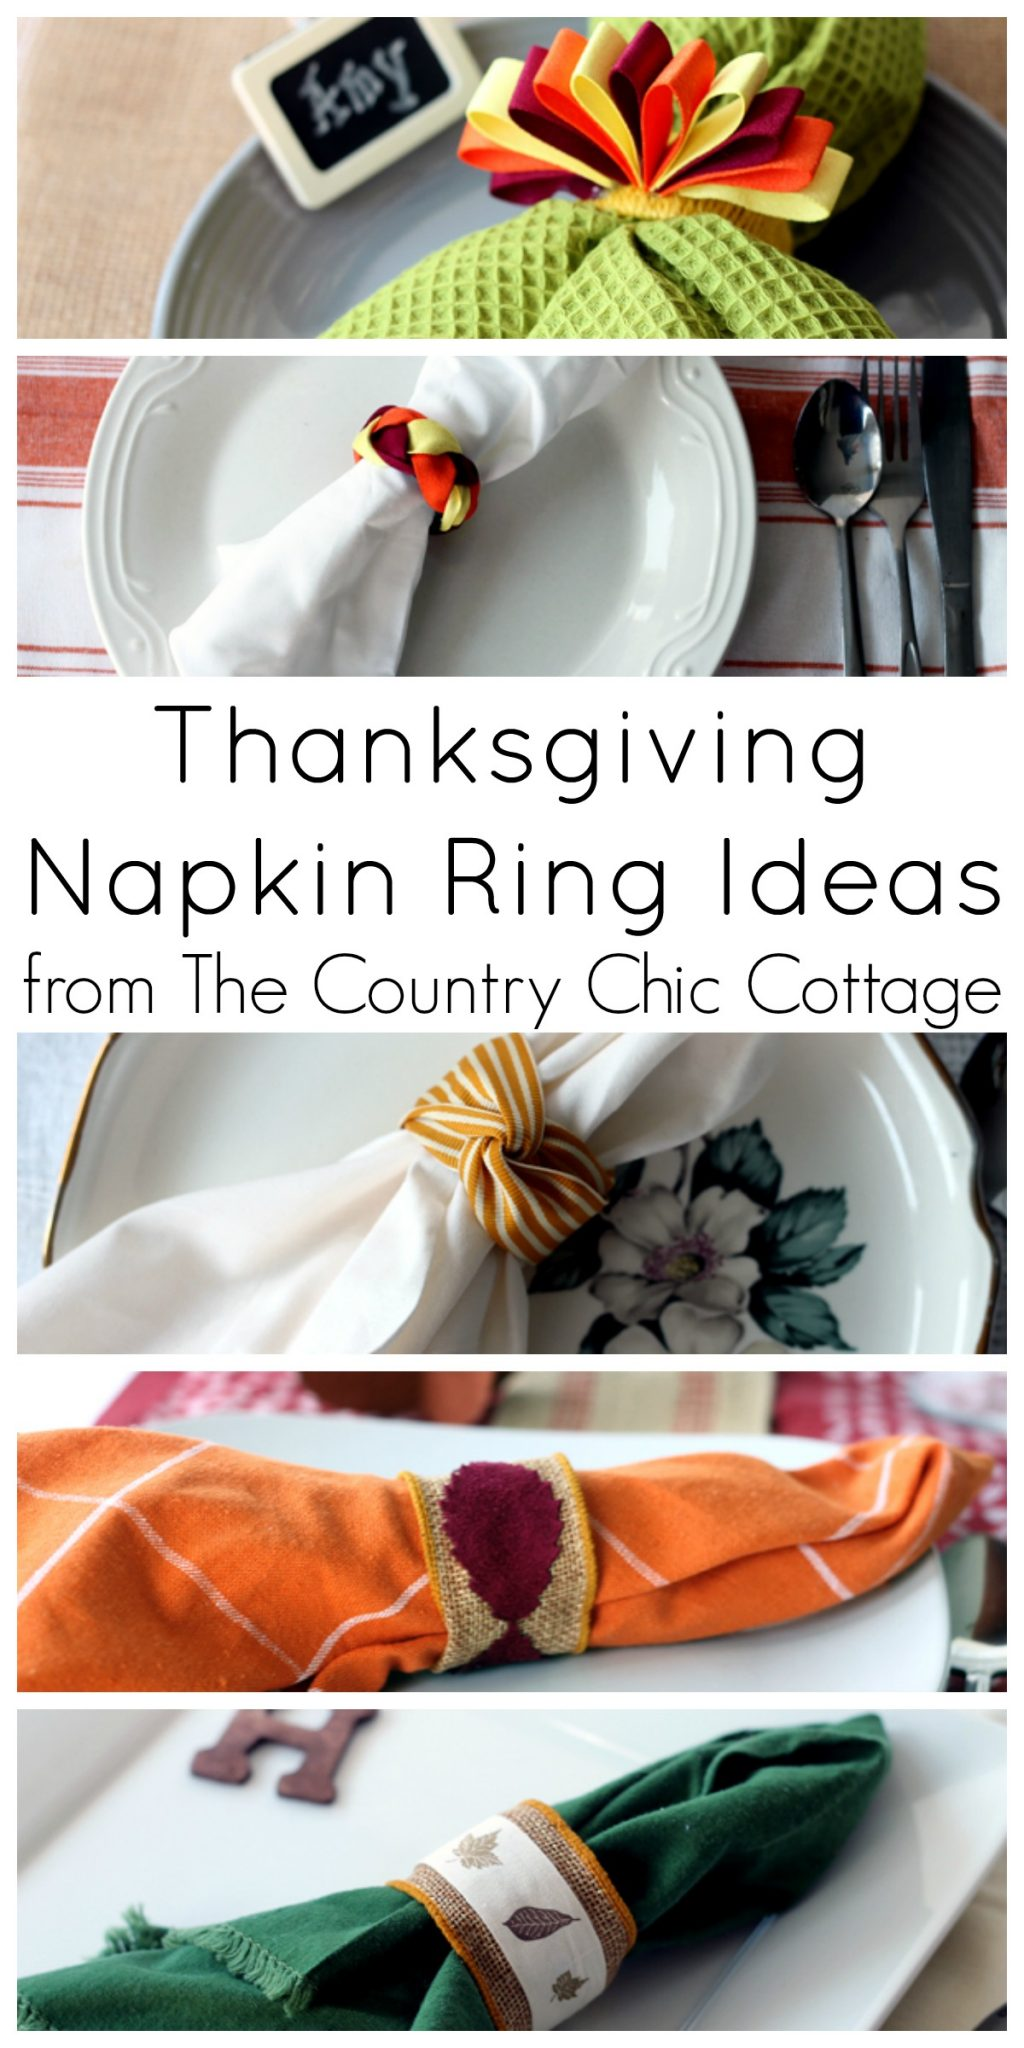 5 Thanksgiving Napkin Ring Ideas - The Country Chic Cottage